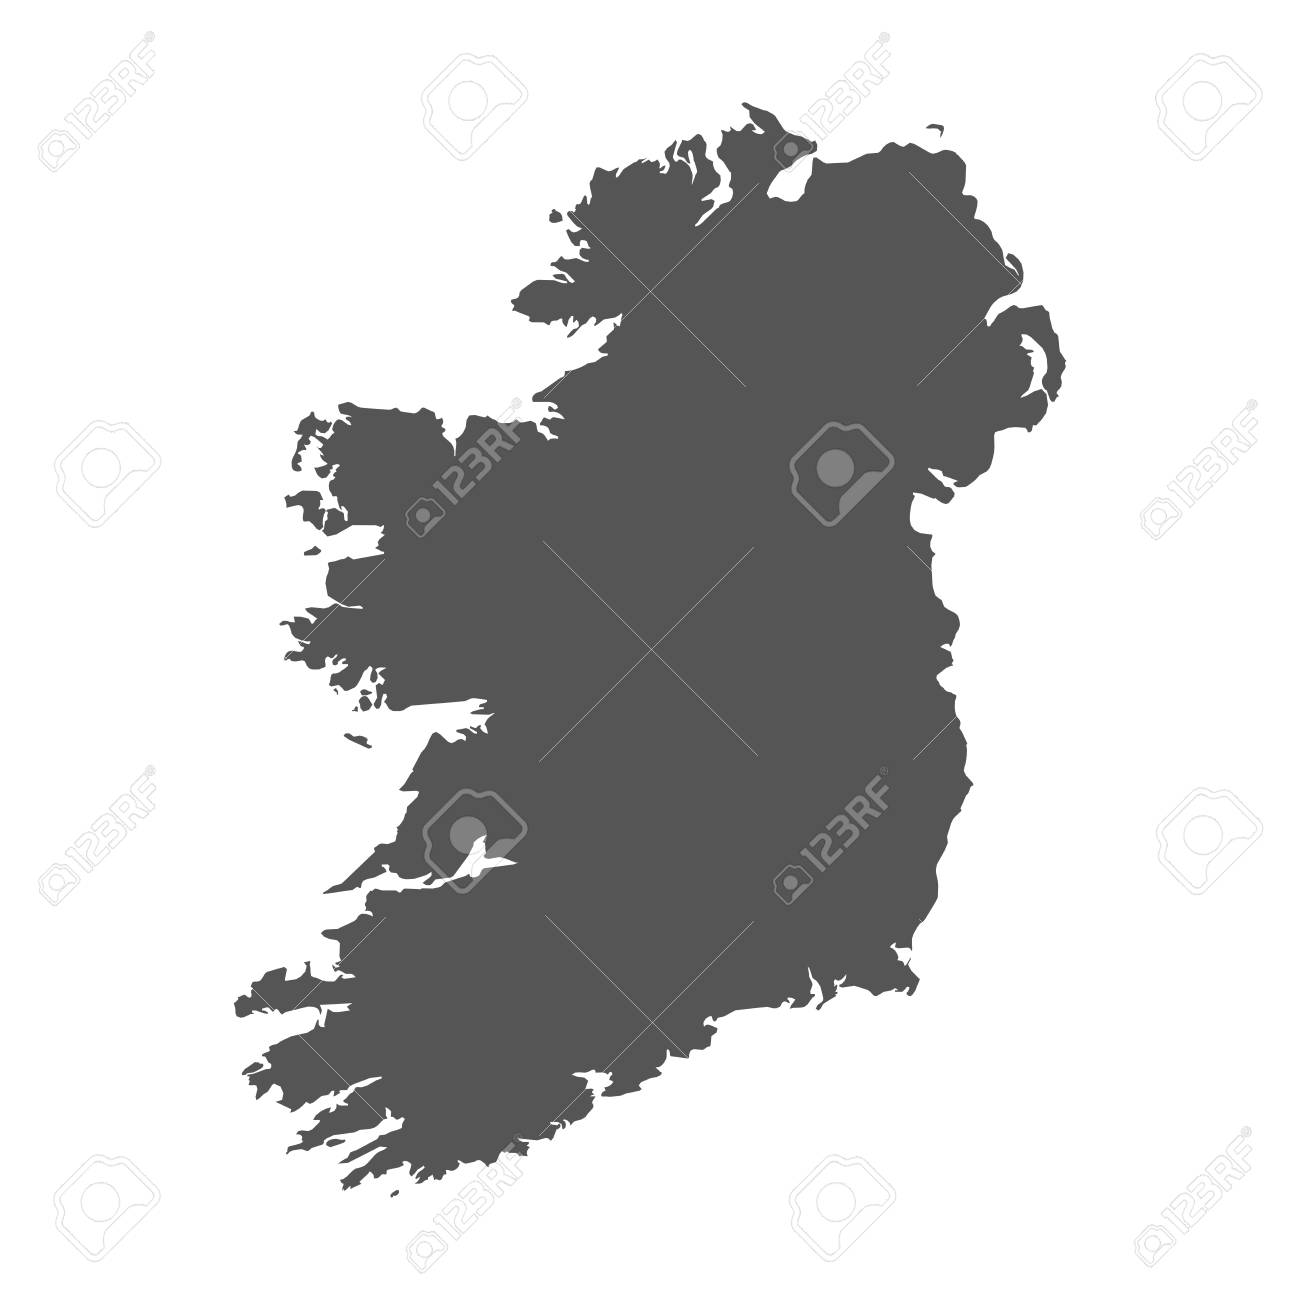 Map Of Ireland Vector.Ireland Vector Map Black Icon On White Background